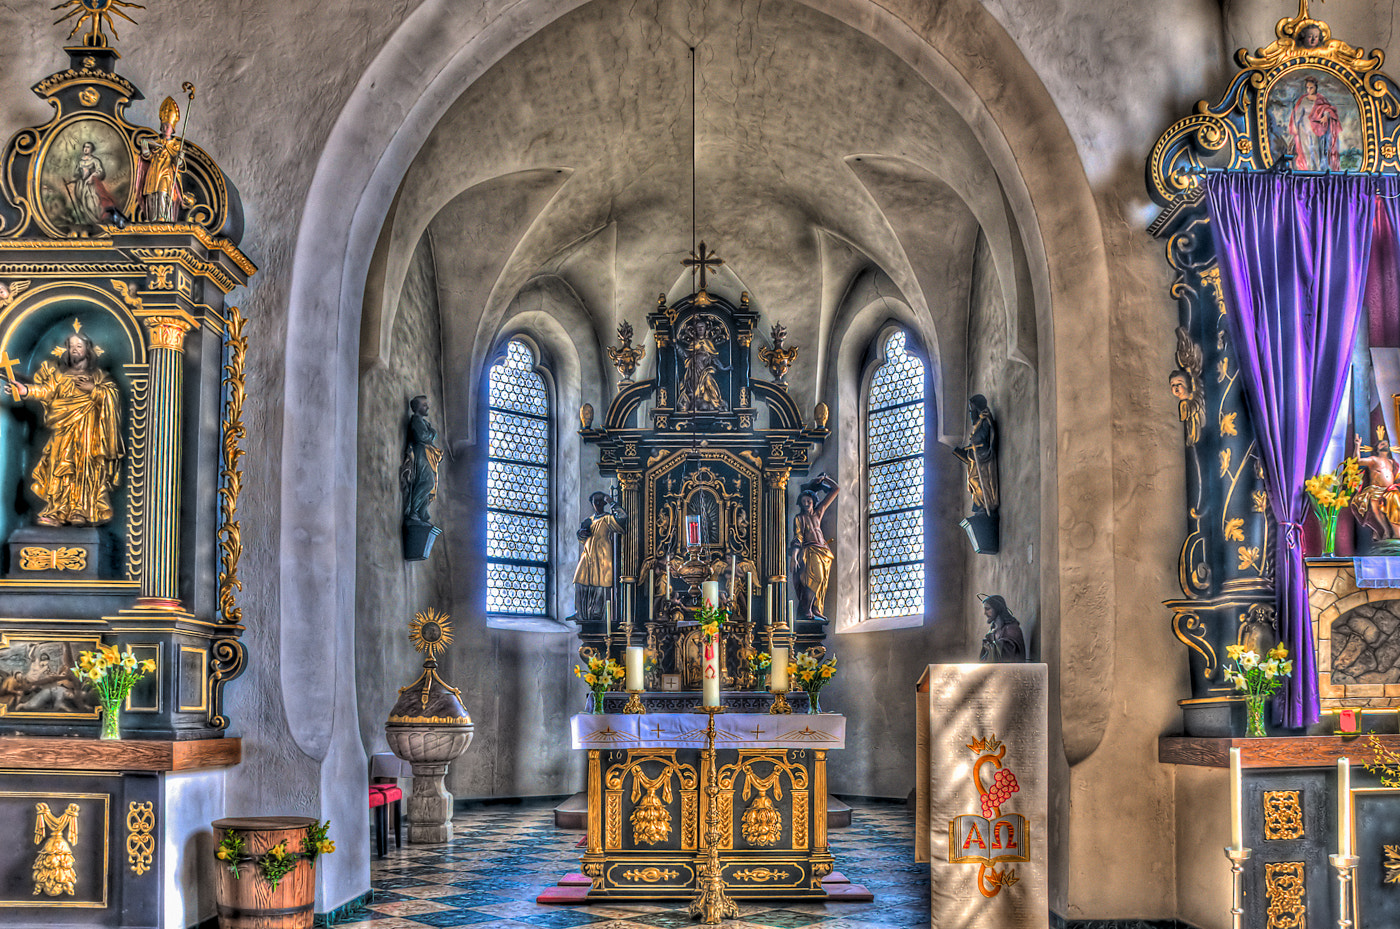 Photograph god's place by Paul Werner Suess on 500px